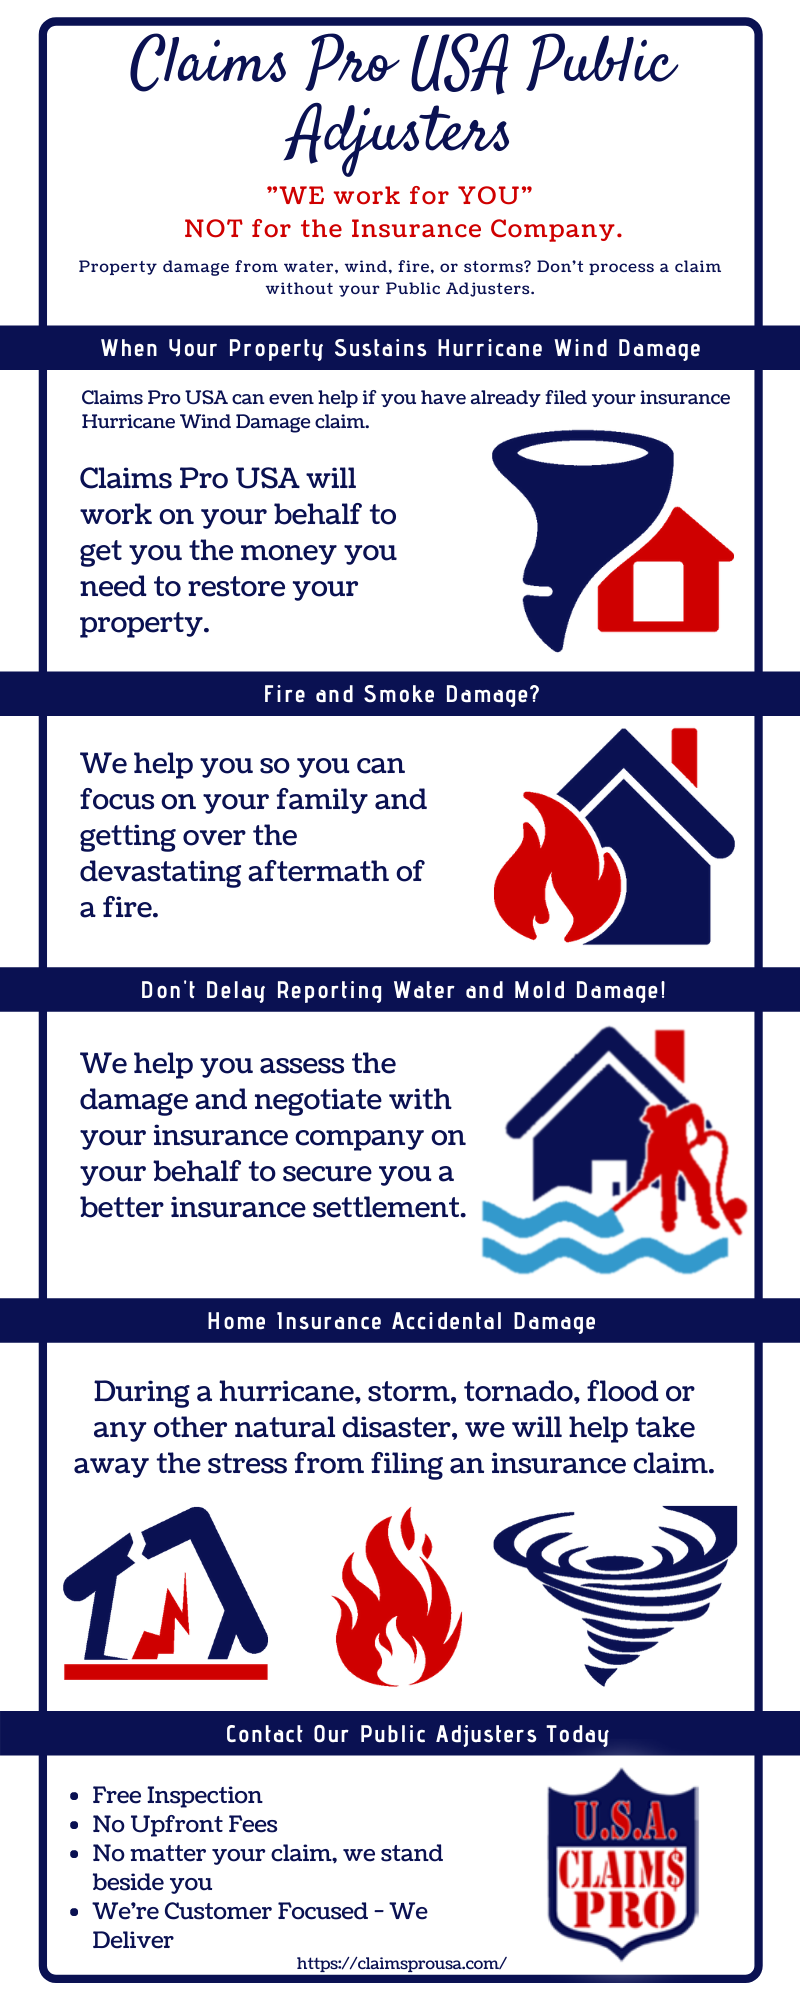 Are you looking for a public adjuster in Florida? Let the